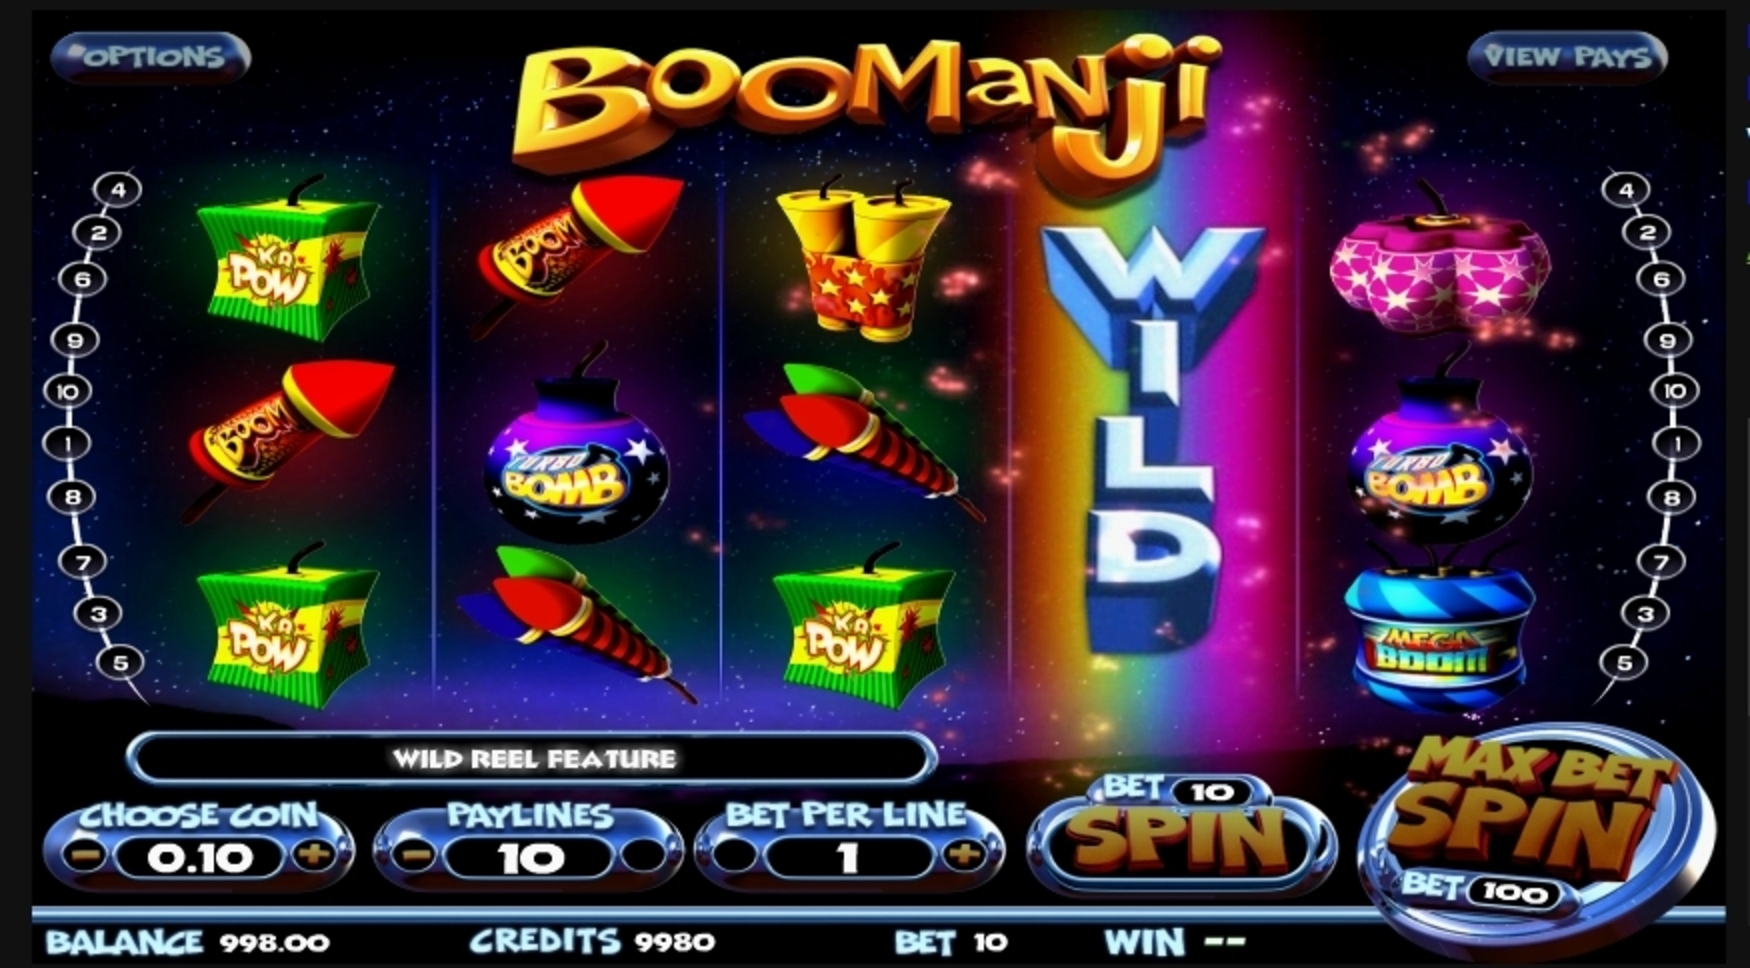 Win Money in Boomanji Free Slot Game by Betsoft